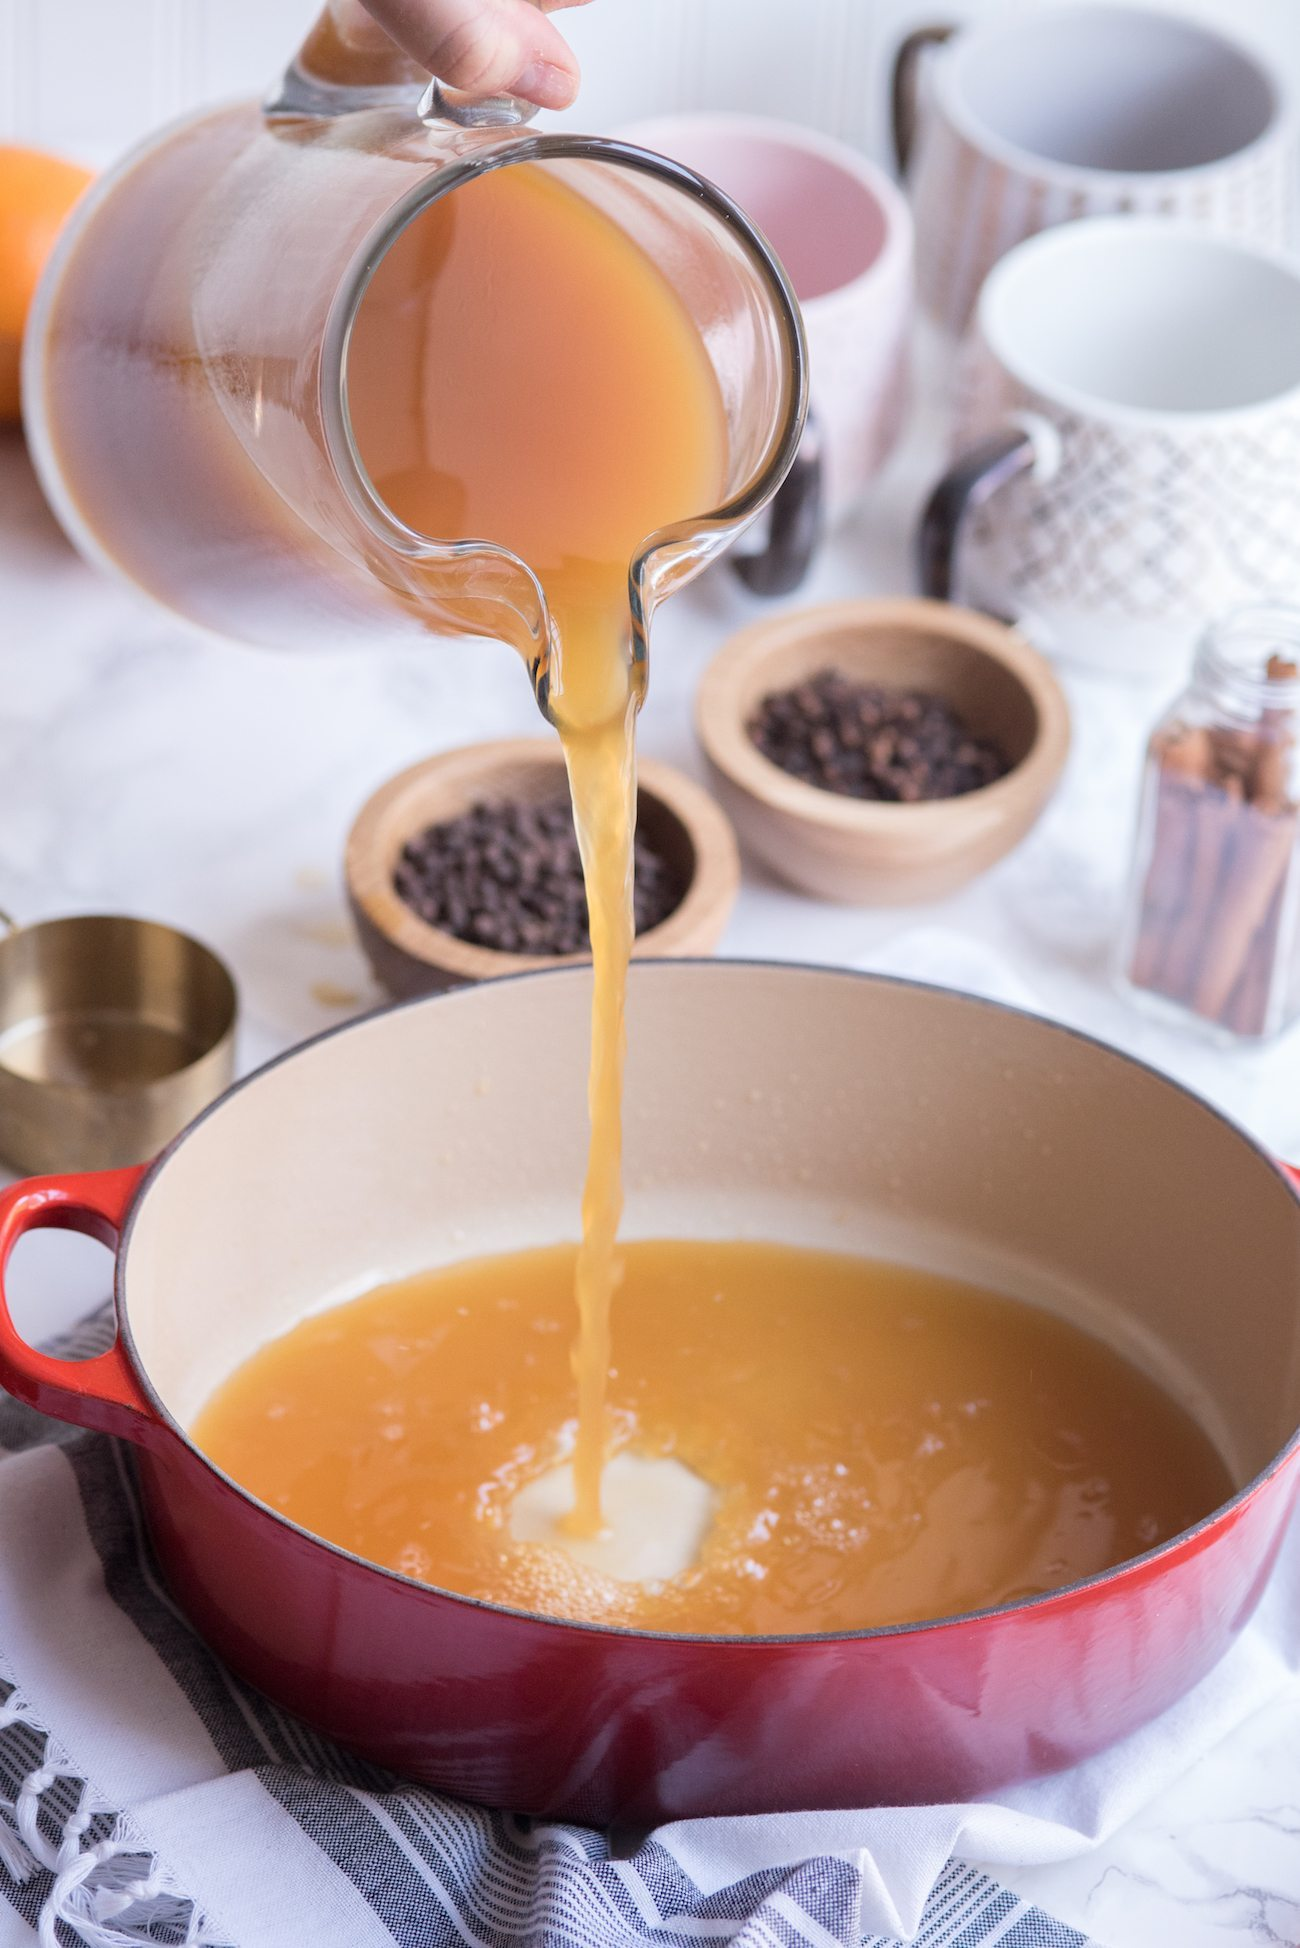 Easy Stovetop or Slow Cooker Mulled Apple Cider Recipe | Fall entertaining ideas, entertaining tips, party ideas, party recipes